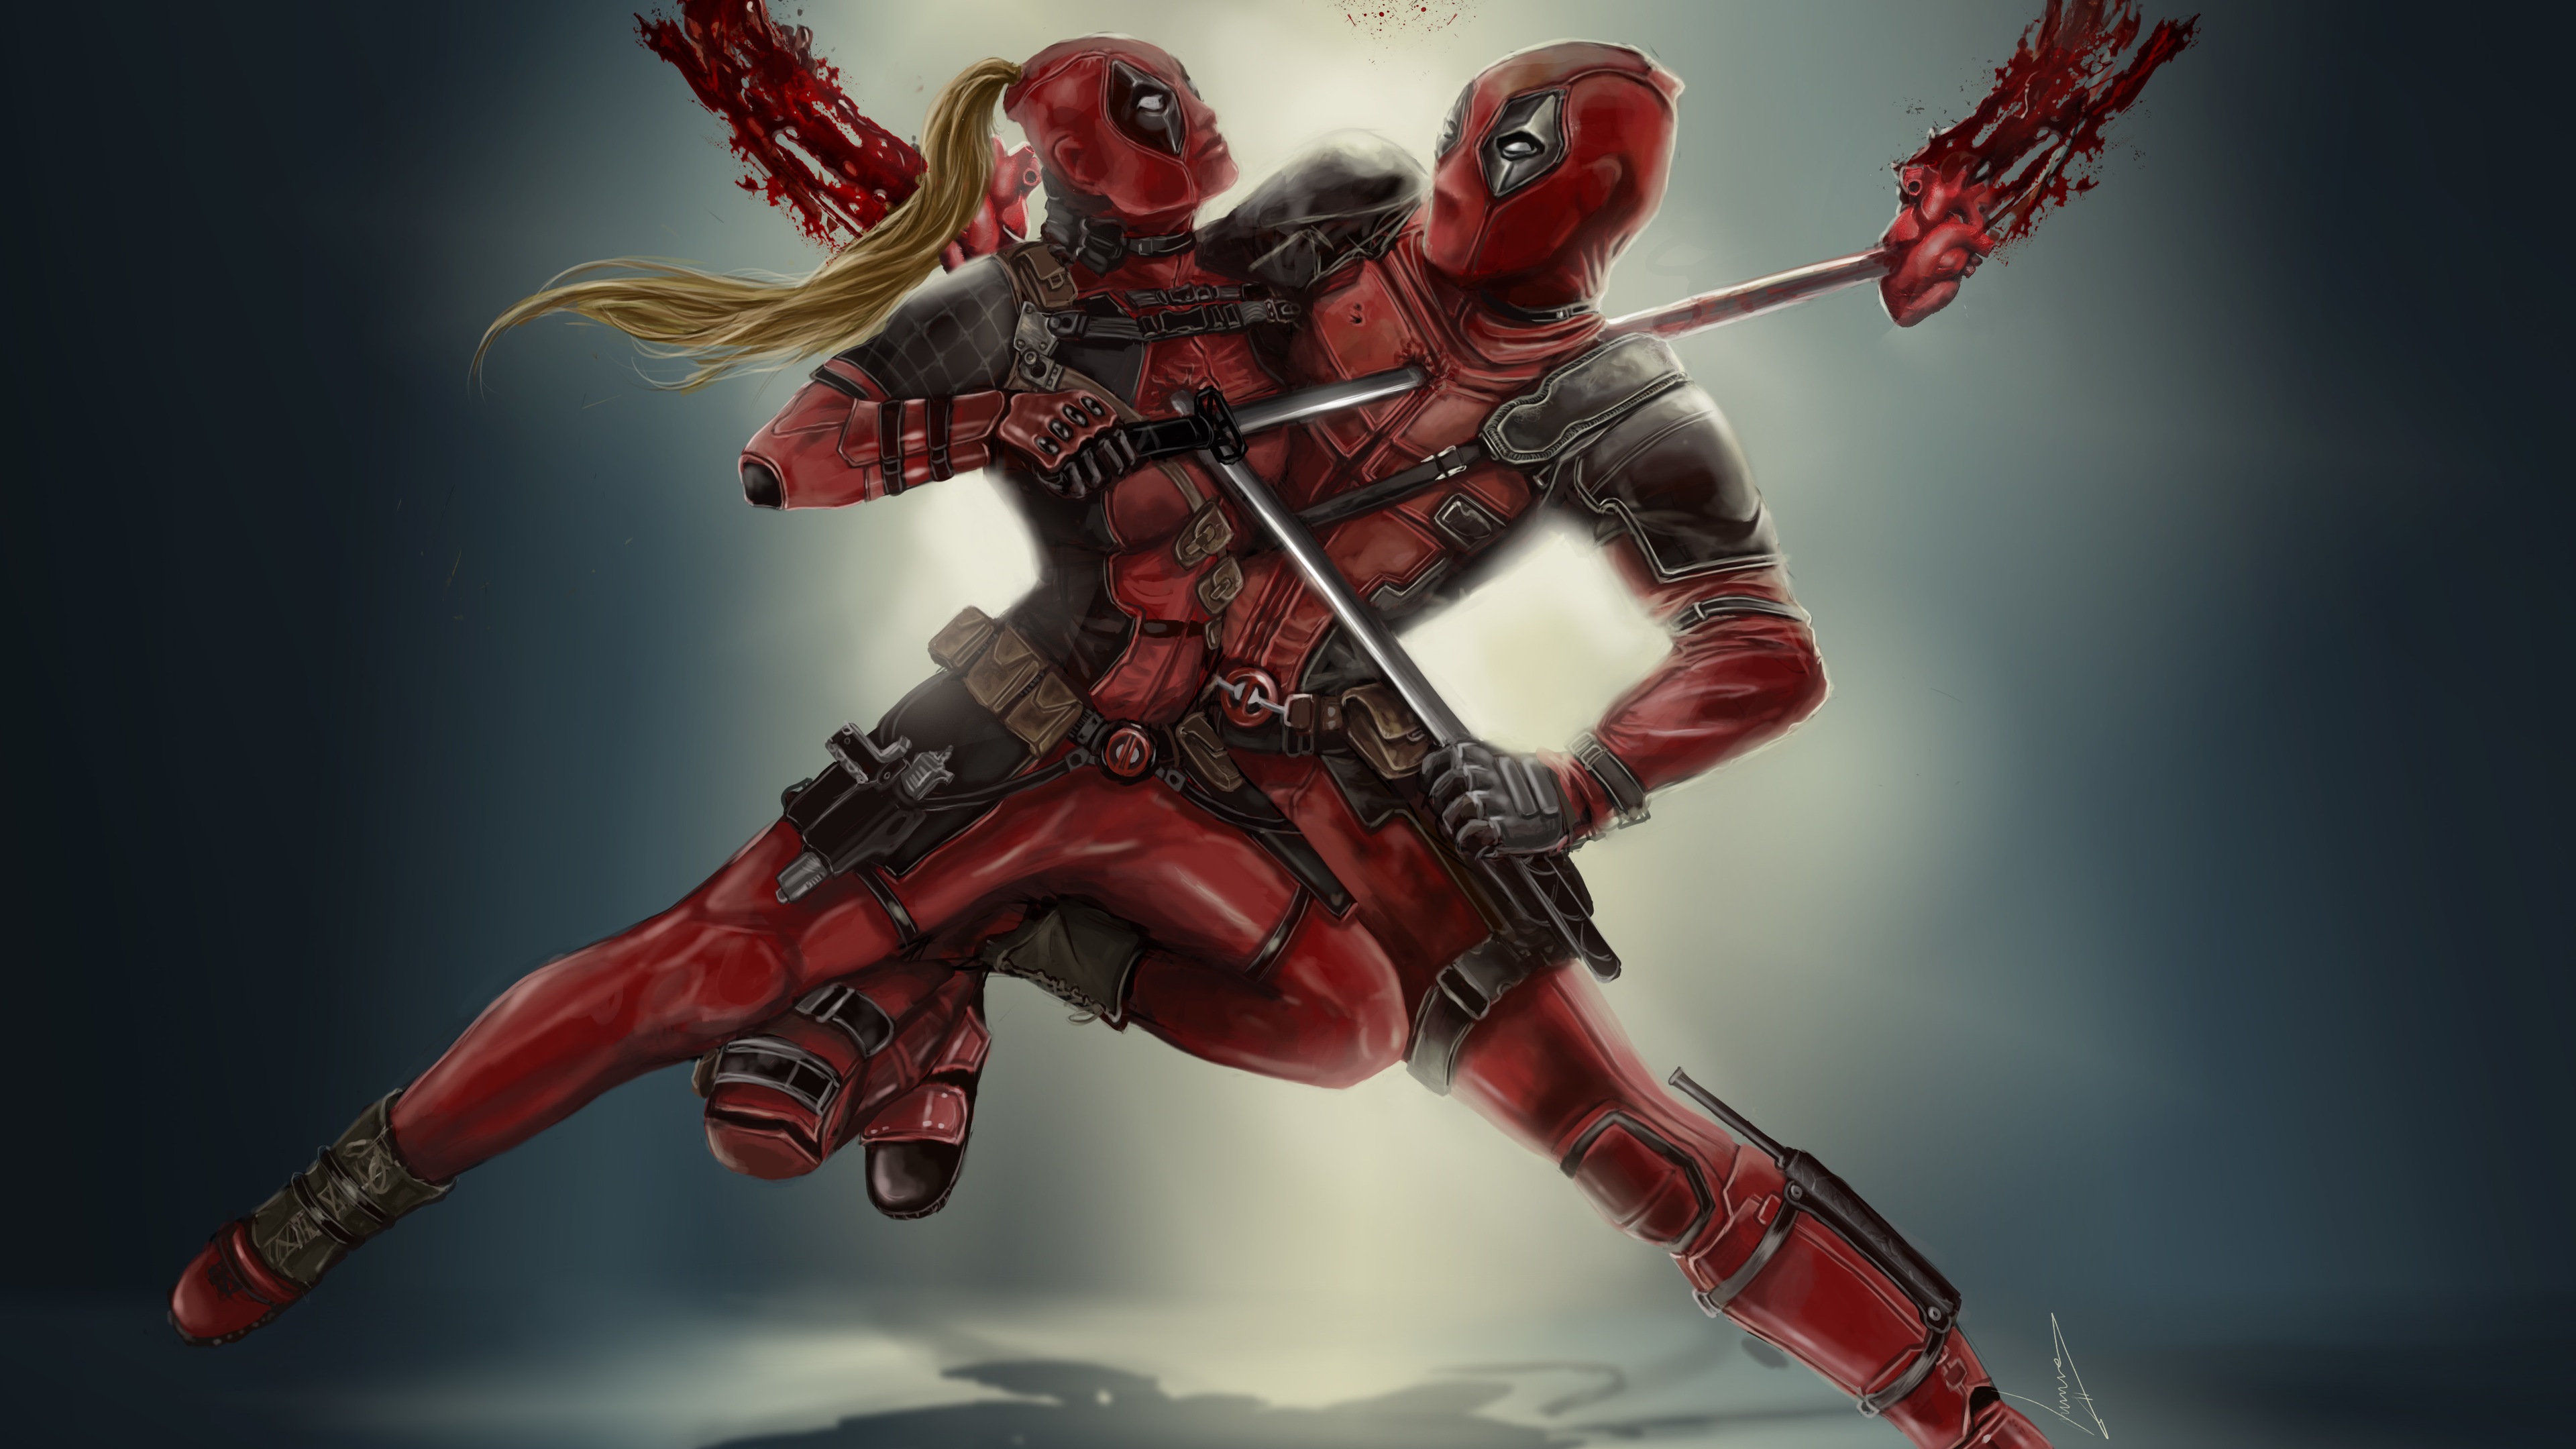 Wallpaper 4k Dedpool Vs Lady Deadpool 2018 Movies Wallpapers 4k